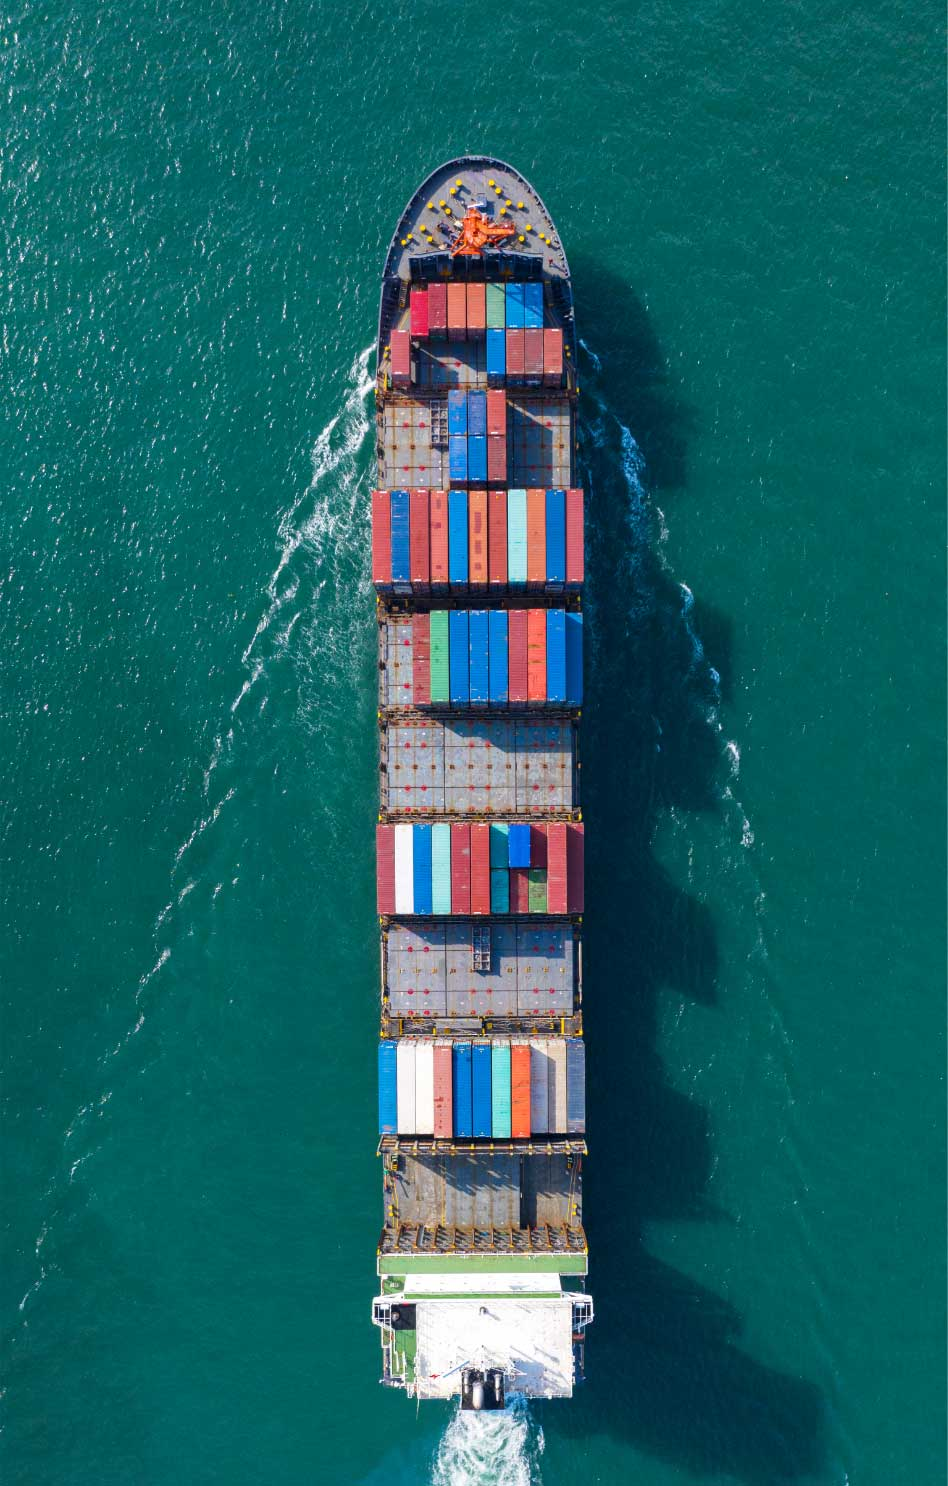 Aerial shot of a container ship in the ocean